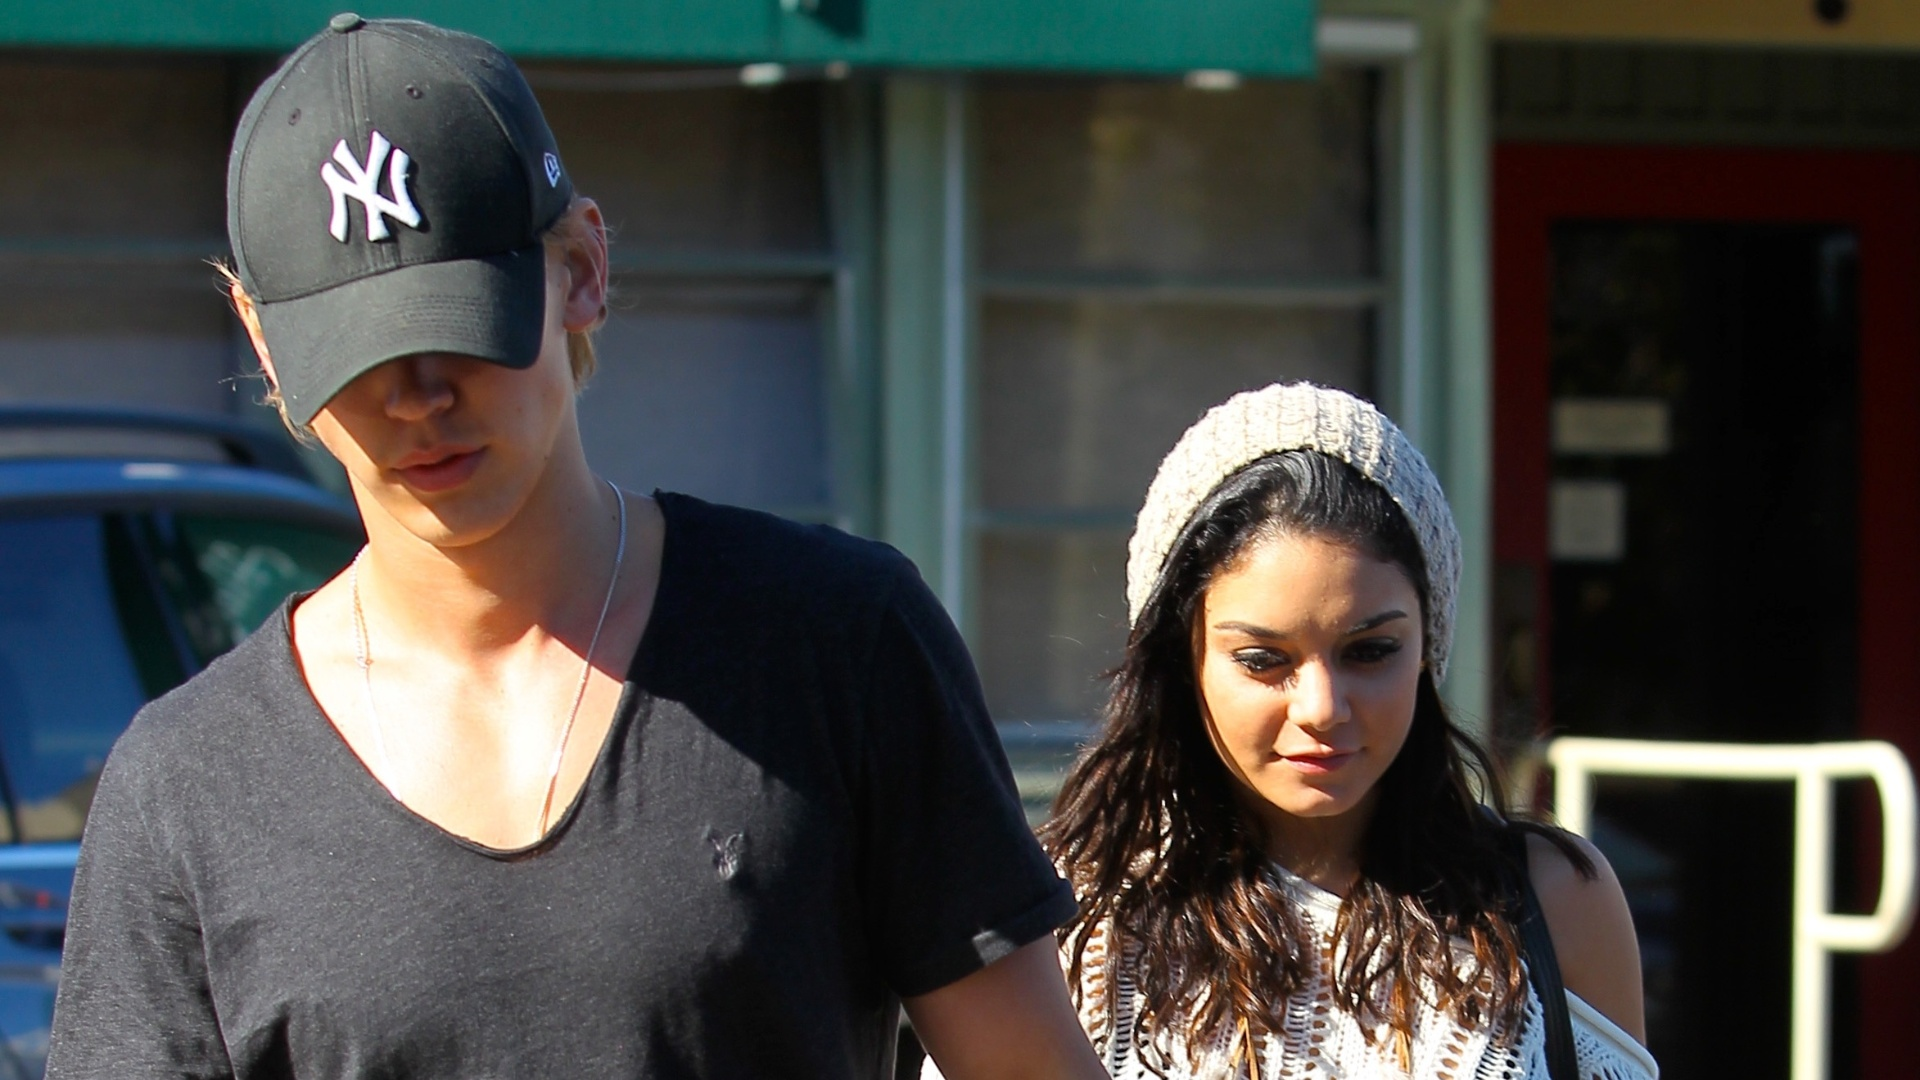 Vanessa Hudgens almoa com o namorado Austin Butler e passeia pelas ruas de Los Angeles (12/1/12)